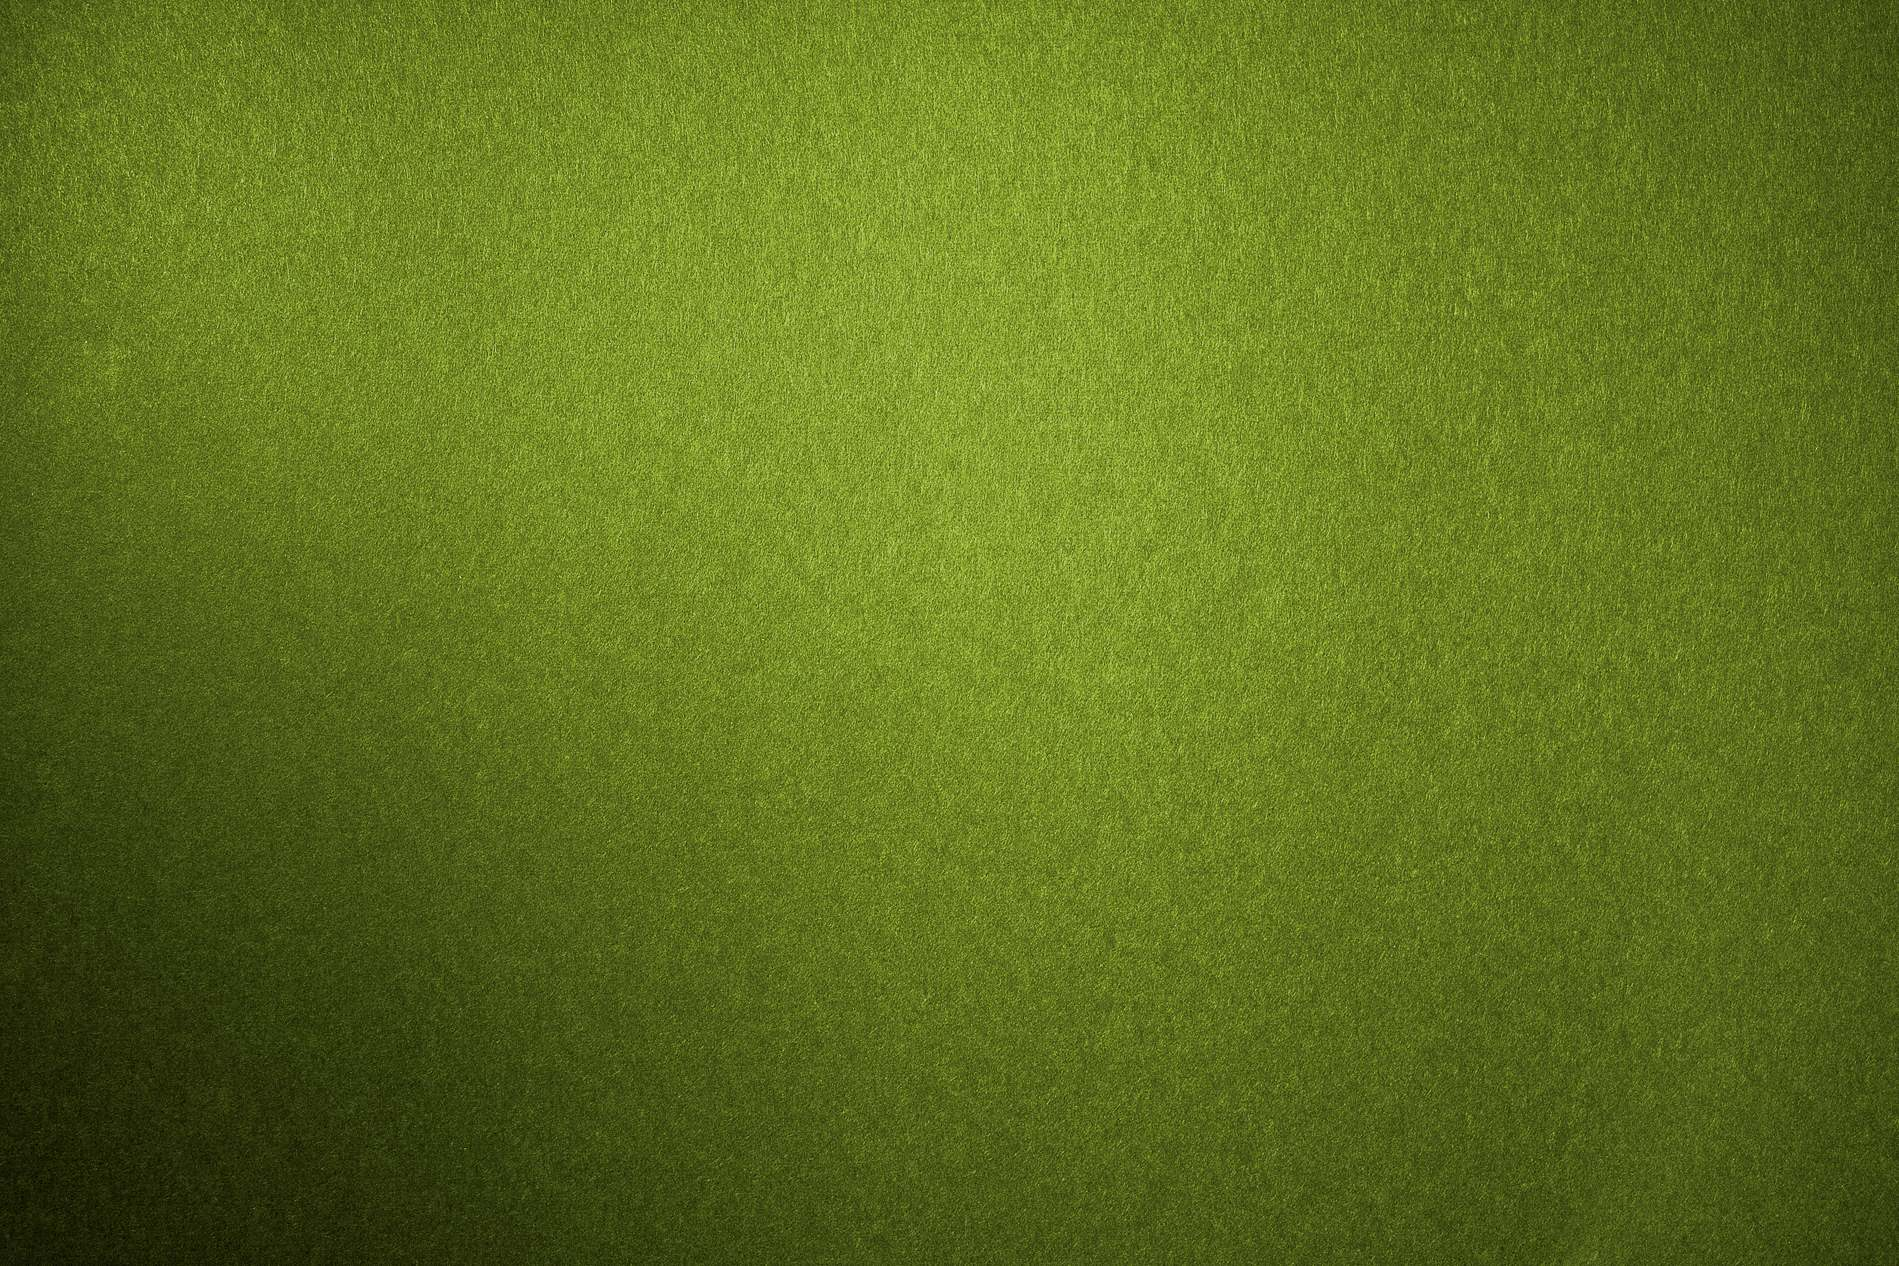 Green Paper Texture Background - PhotoHDX